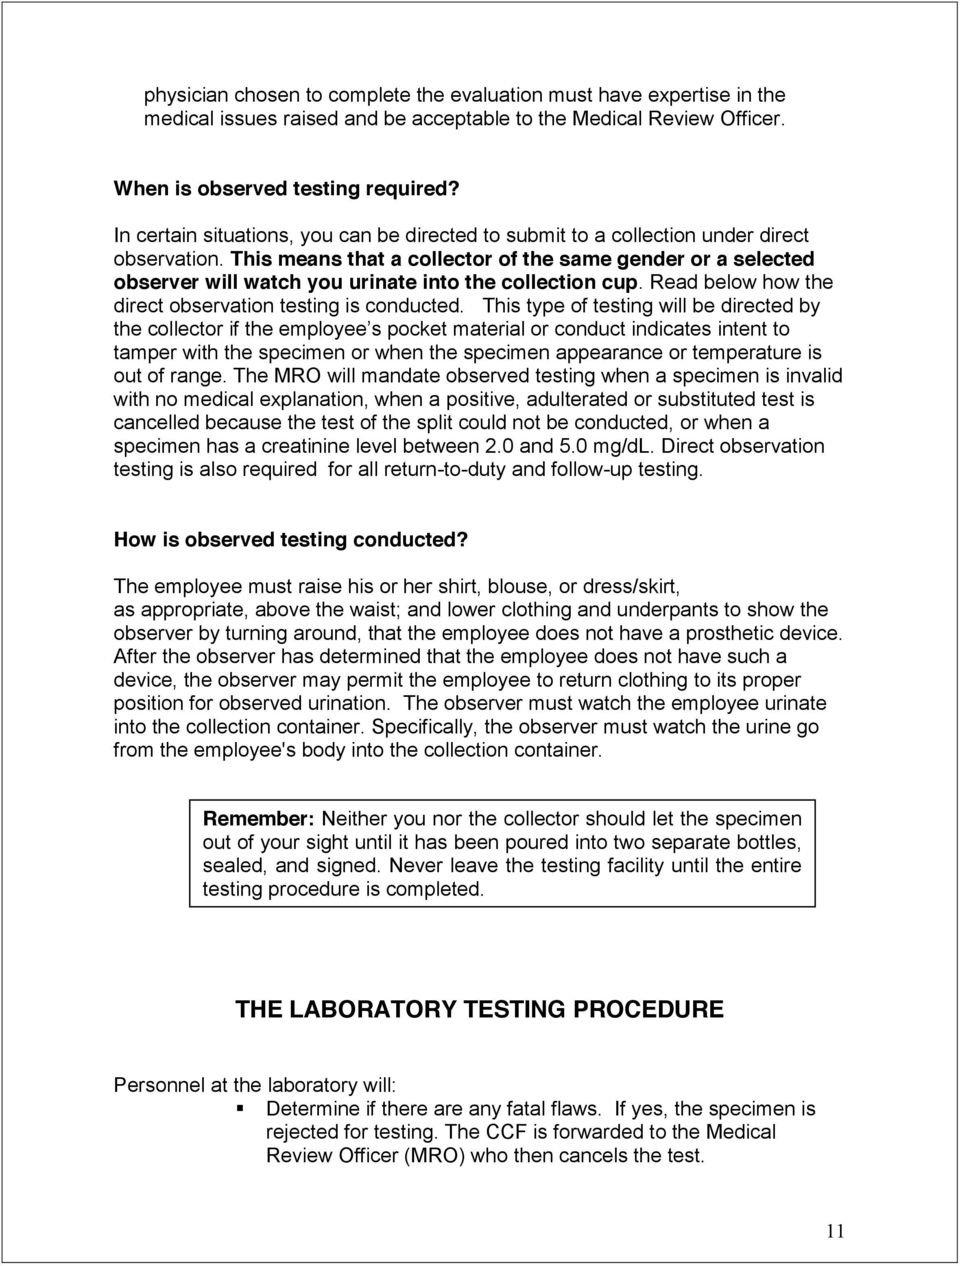 This means that a collector of the same gender or a selected observer will watch you urinate into the collection cup. Read below how the direct observation testing is conducted.